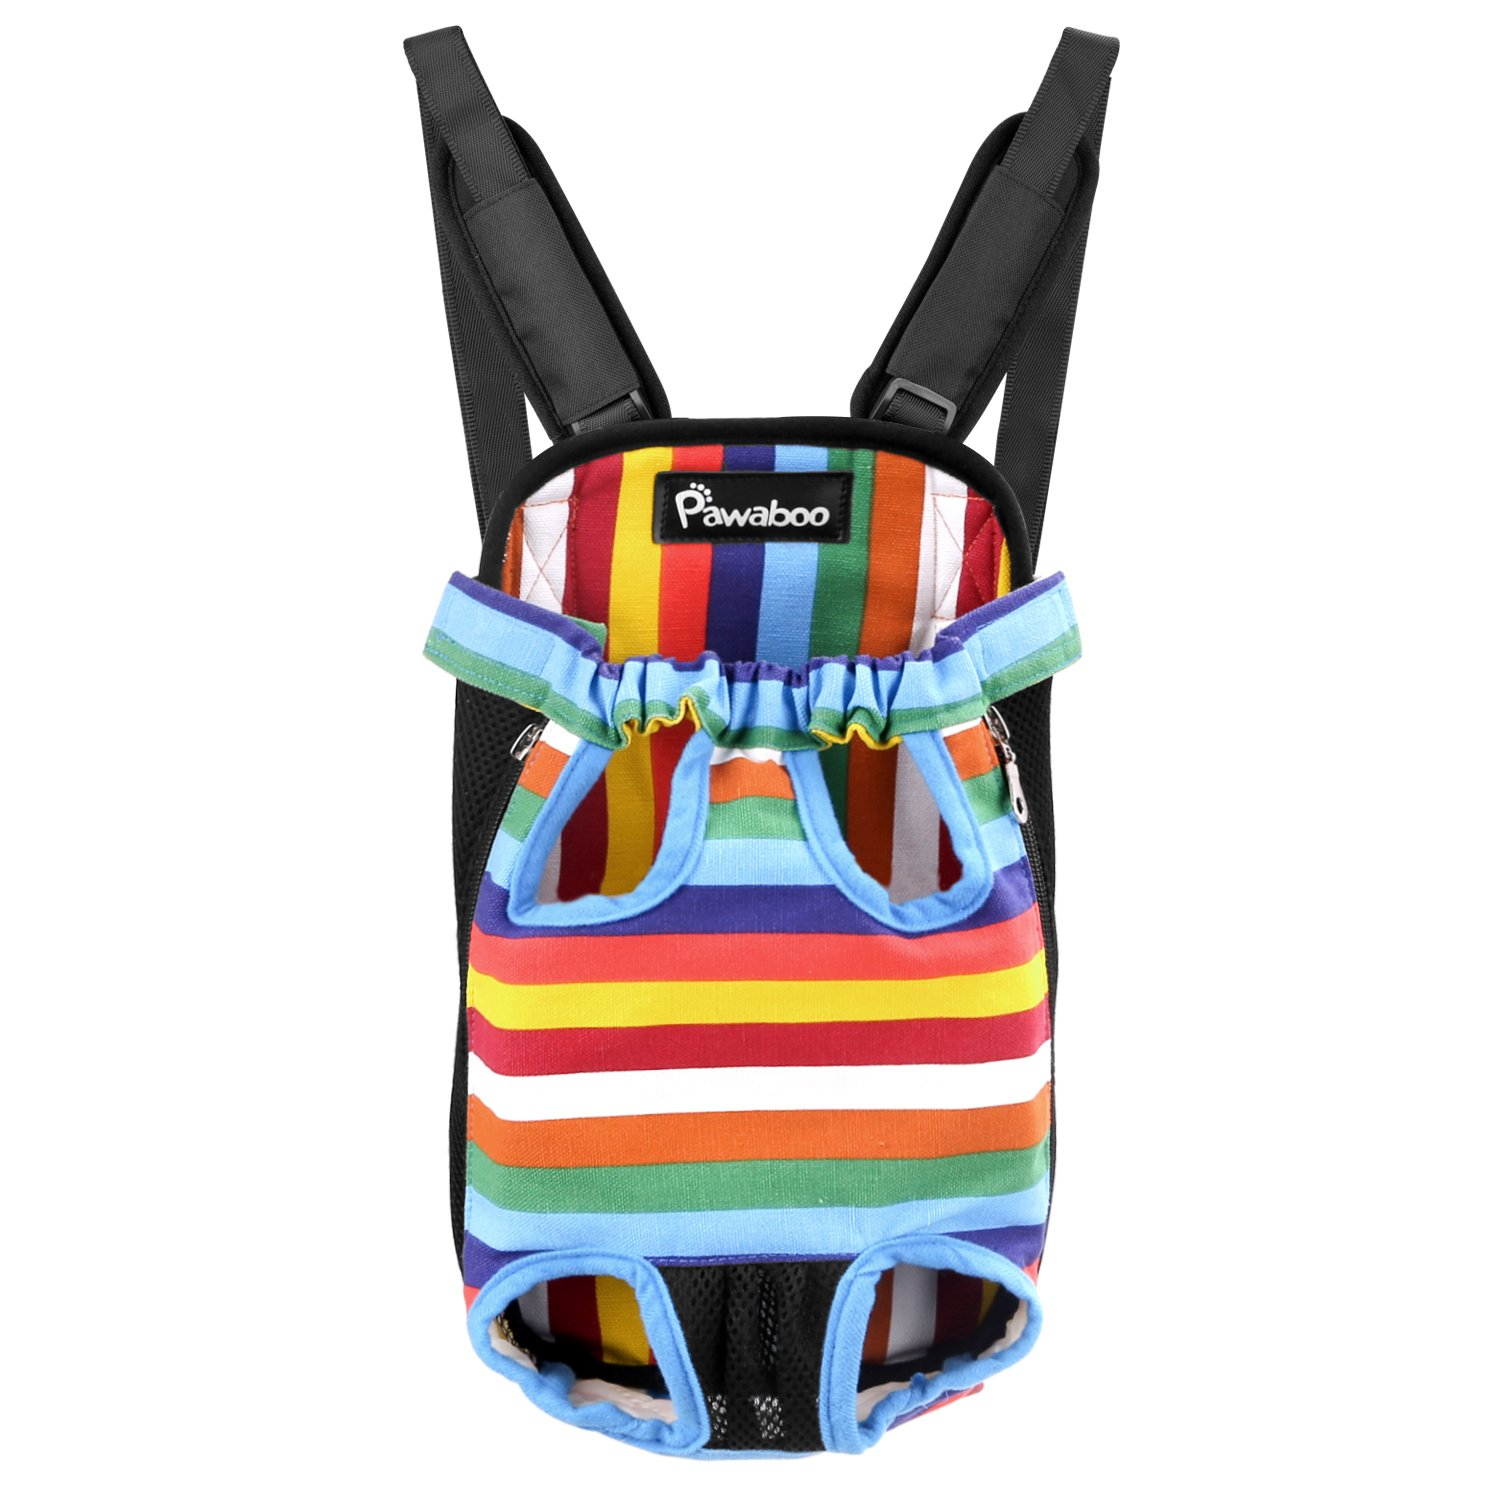 Pet Bag Pawaboo medium size small dog cat 2WAY hug backpack sling bag piggyback ride string pet carry for (M Multi-color)